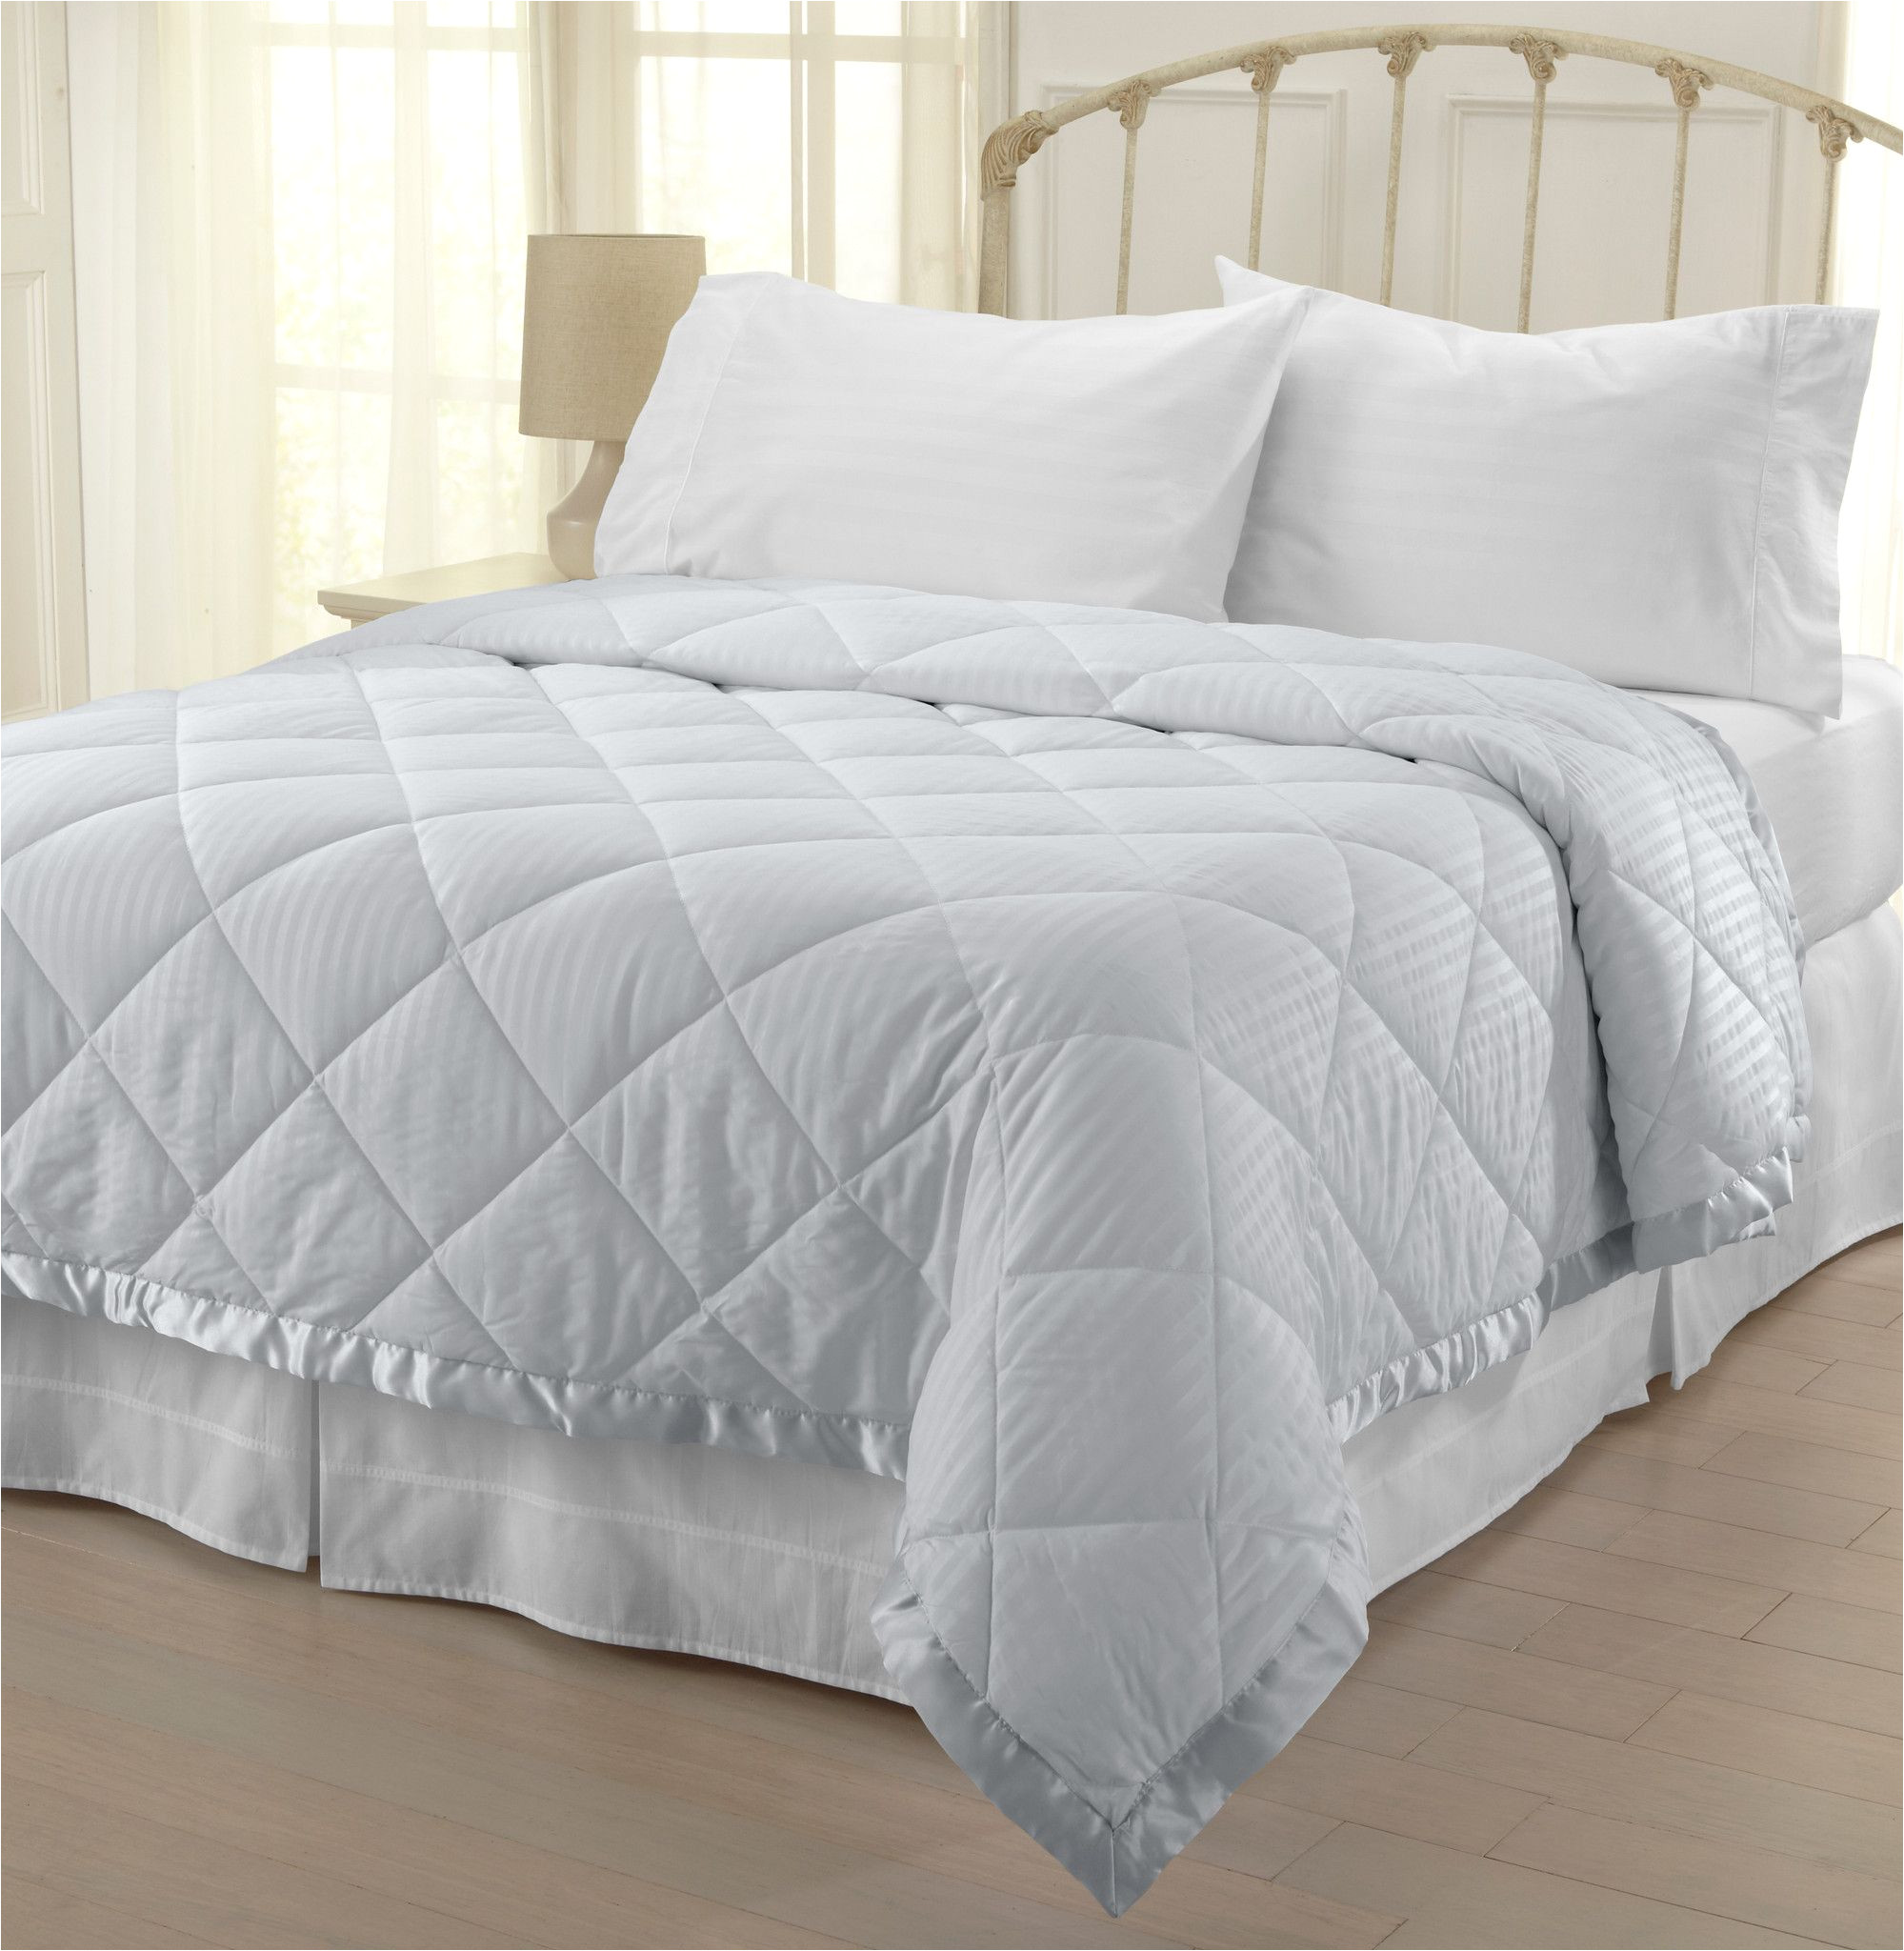 romana collection luxury down alternative bed blanket